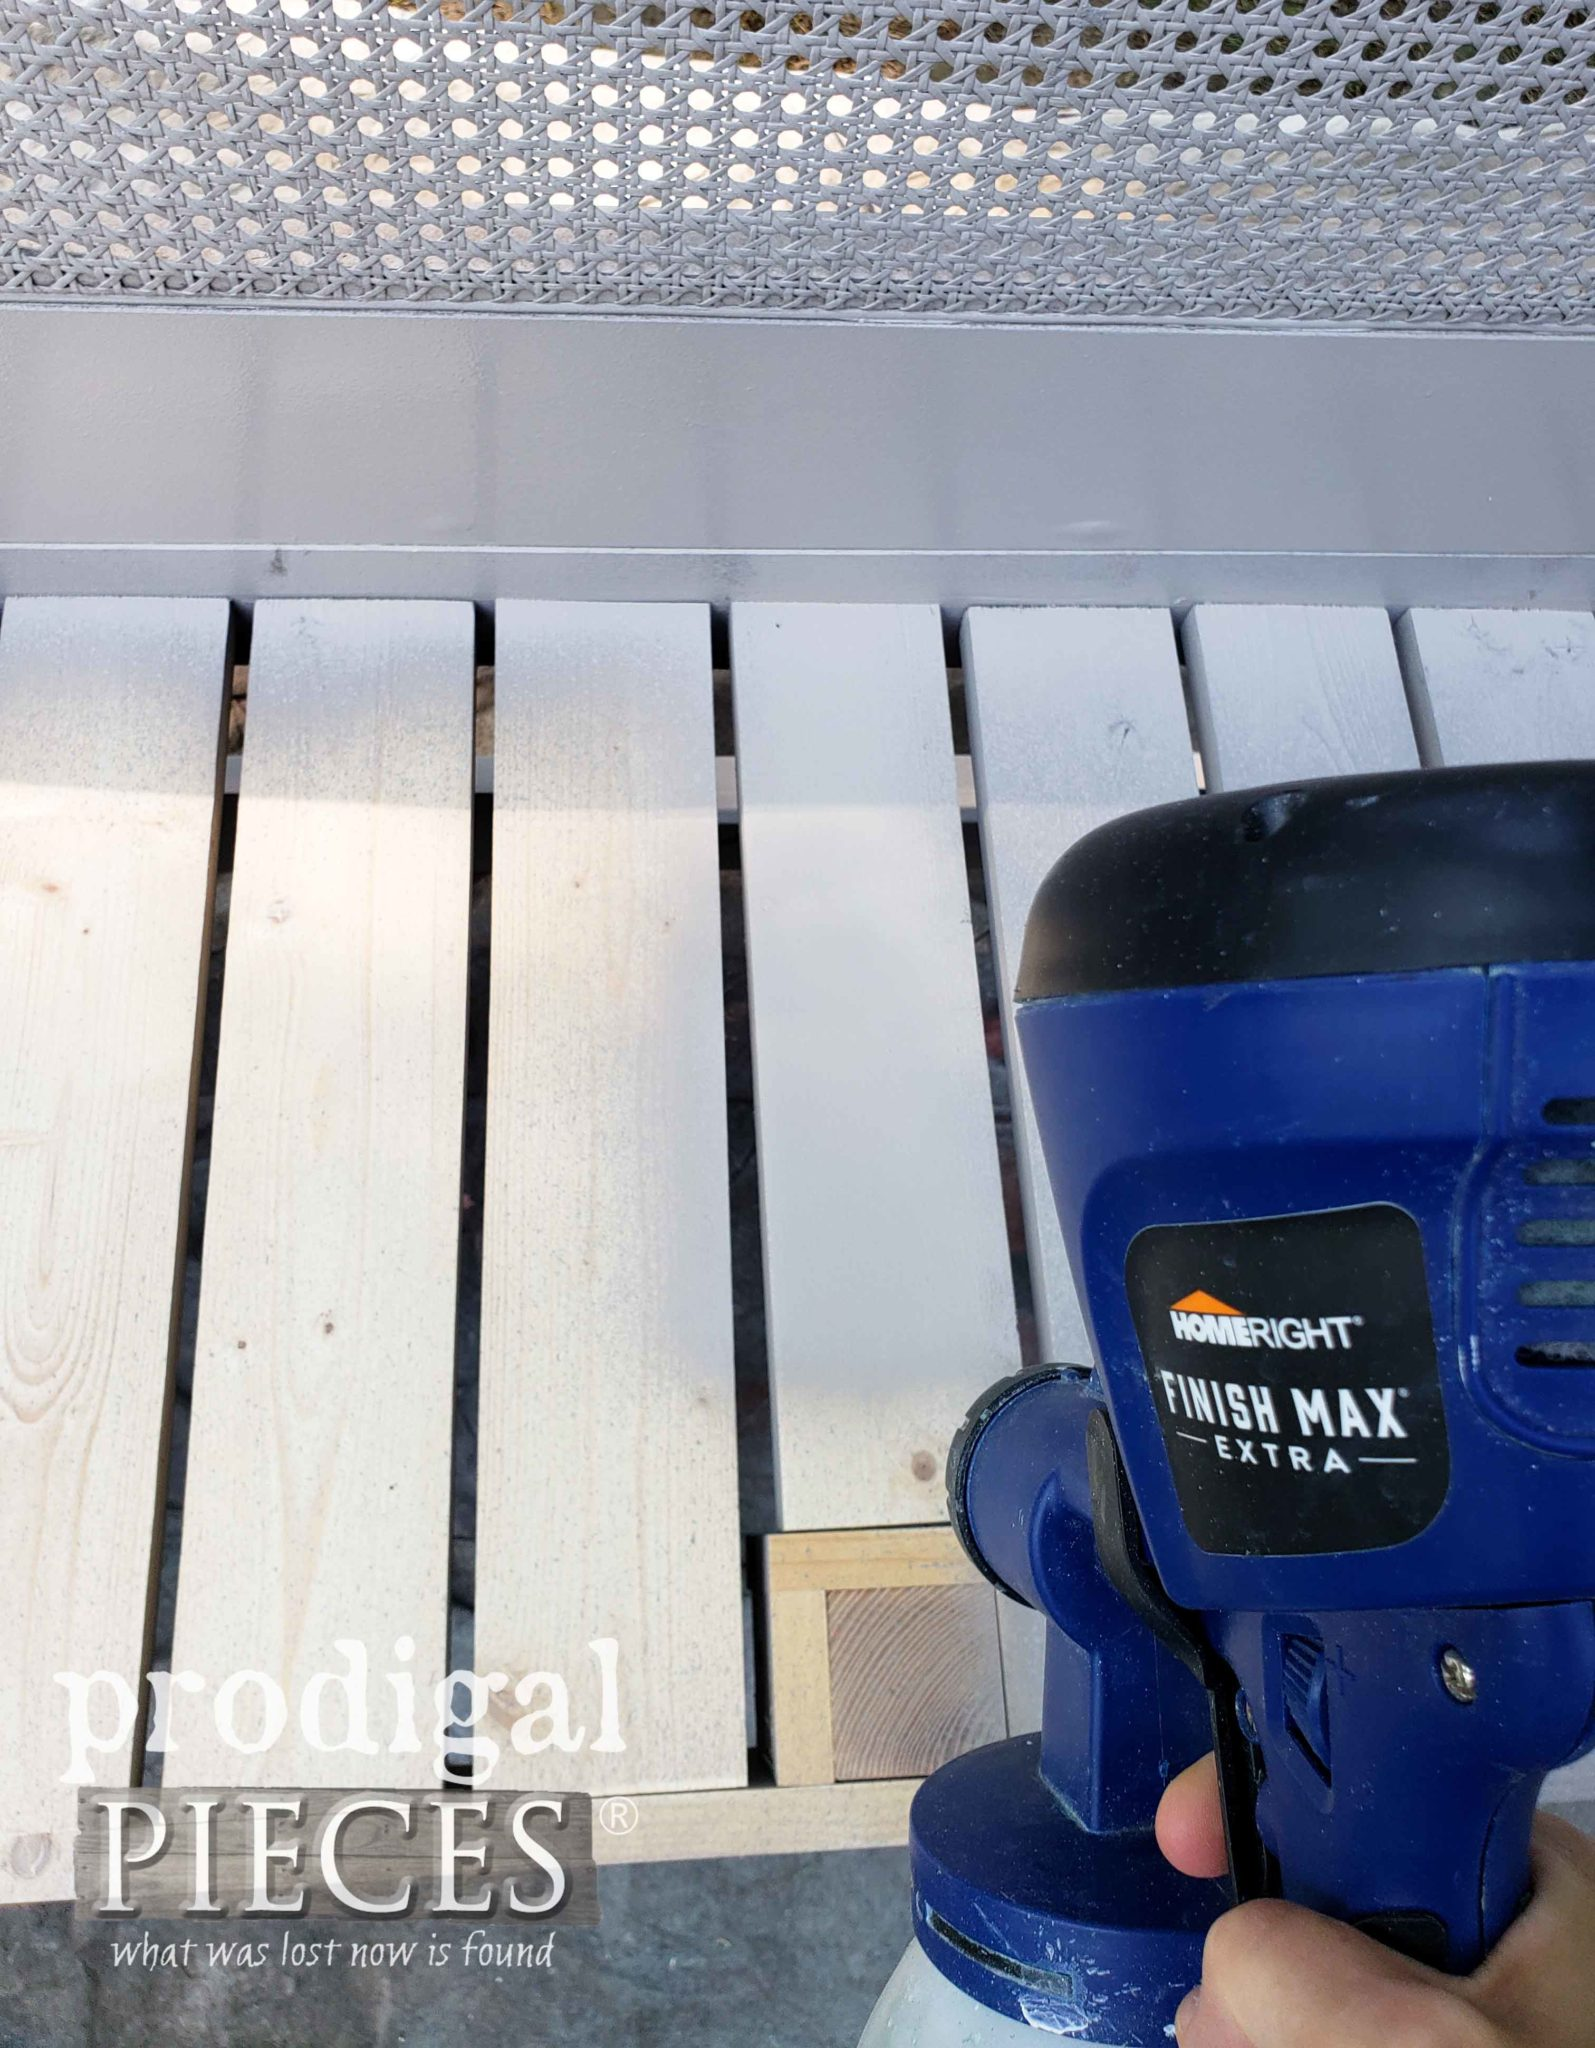 Vertical Spray Pattern by the HomeRight Super Finish Max as shown by Prodigal Pieces | prodigalpieces.com